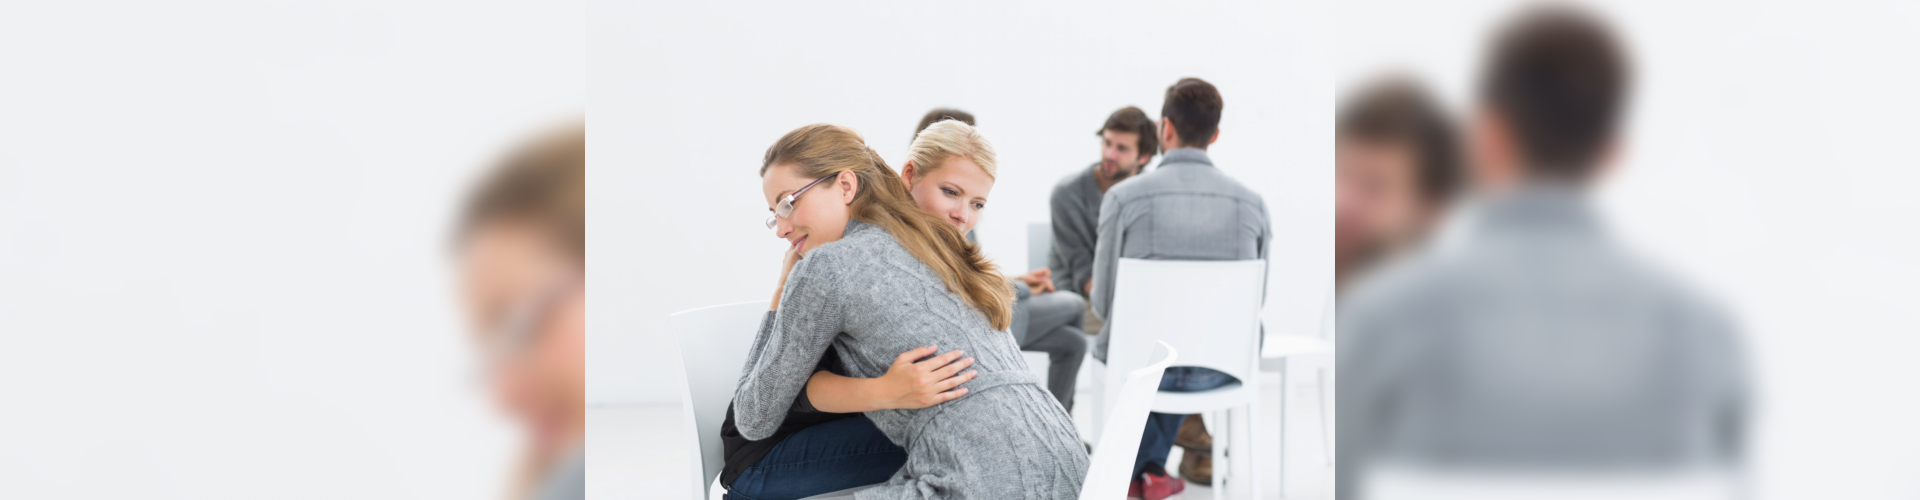 group therapy session therapist client hugging circle foreground